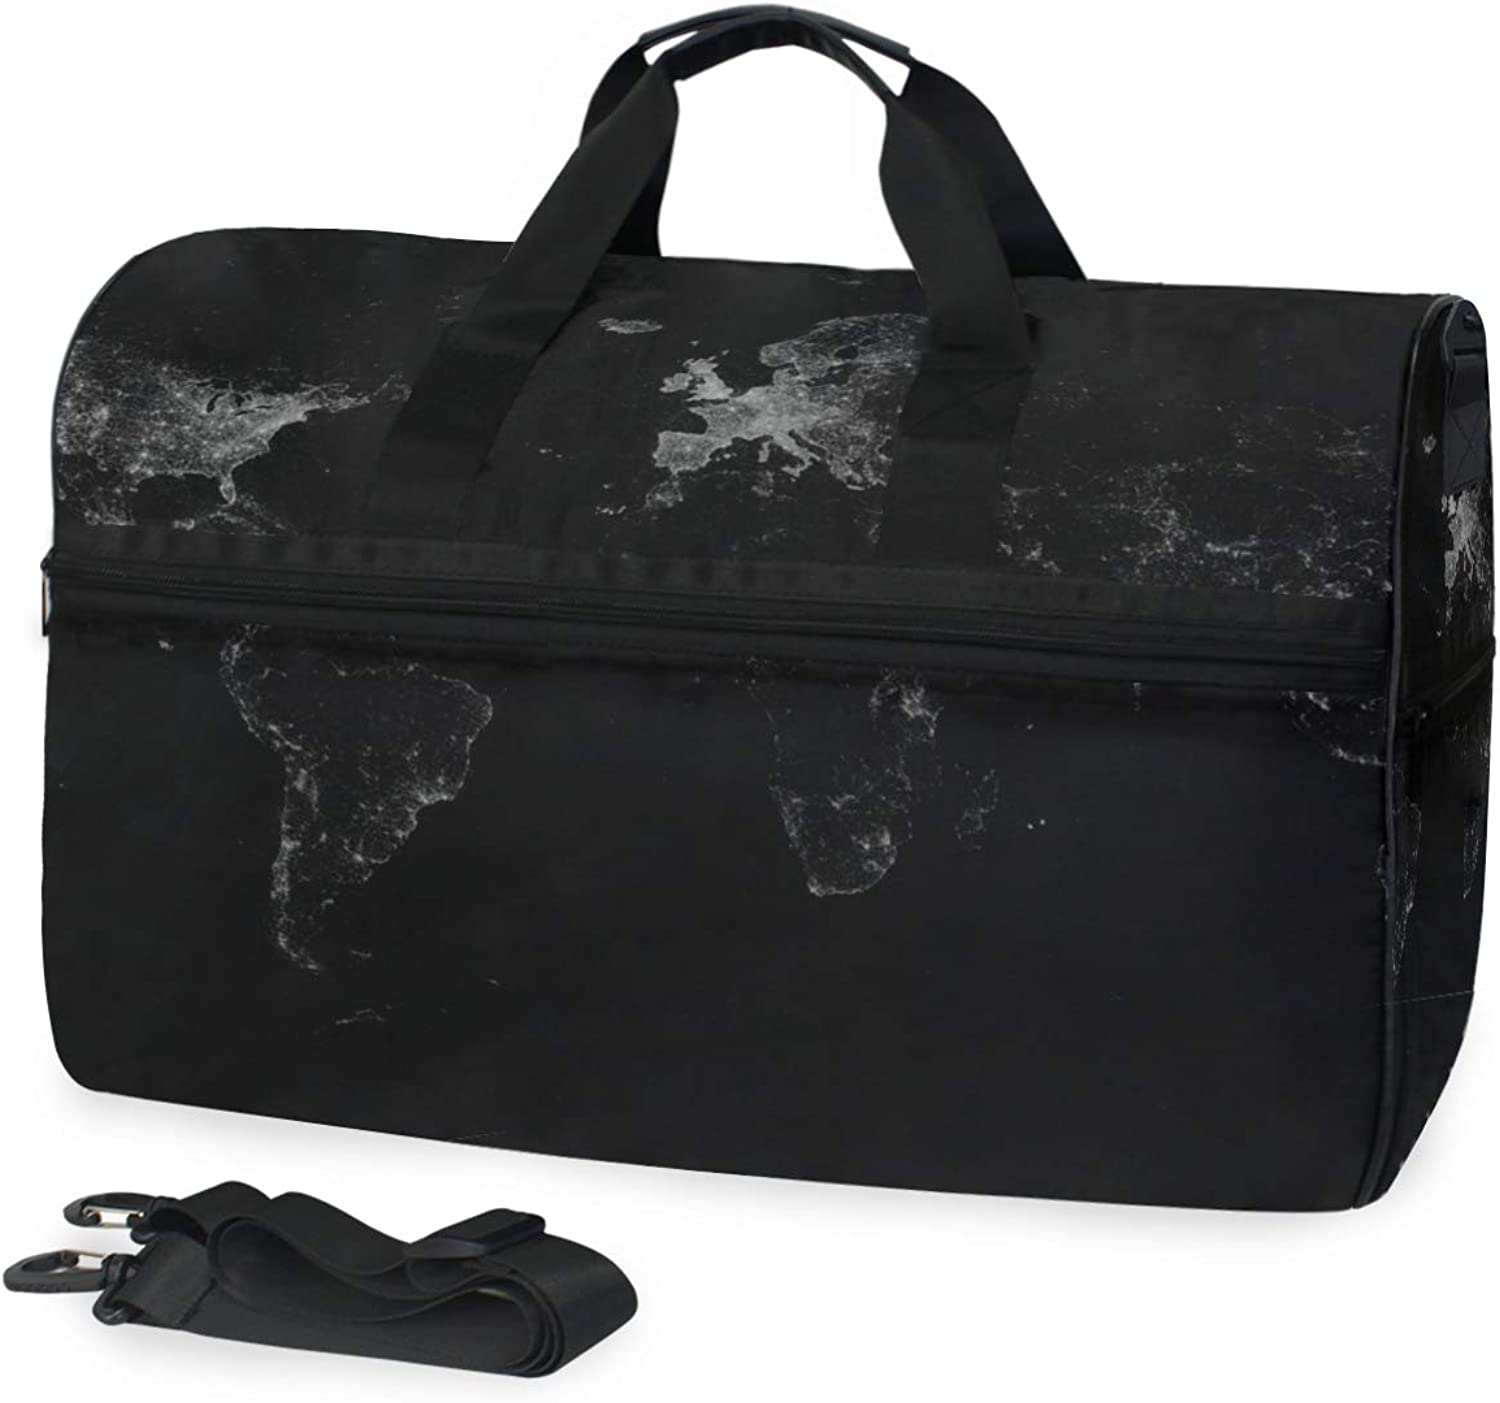 World Map Black Dark Large Travel Duffel Tote Bag Weekend Overnight Travel Bag Gym Bag Fitness Sports Bag with shoes Compartment